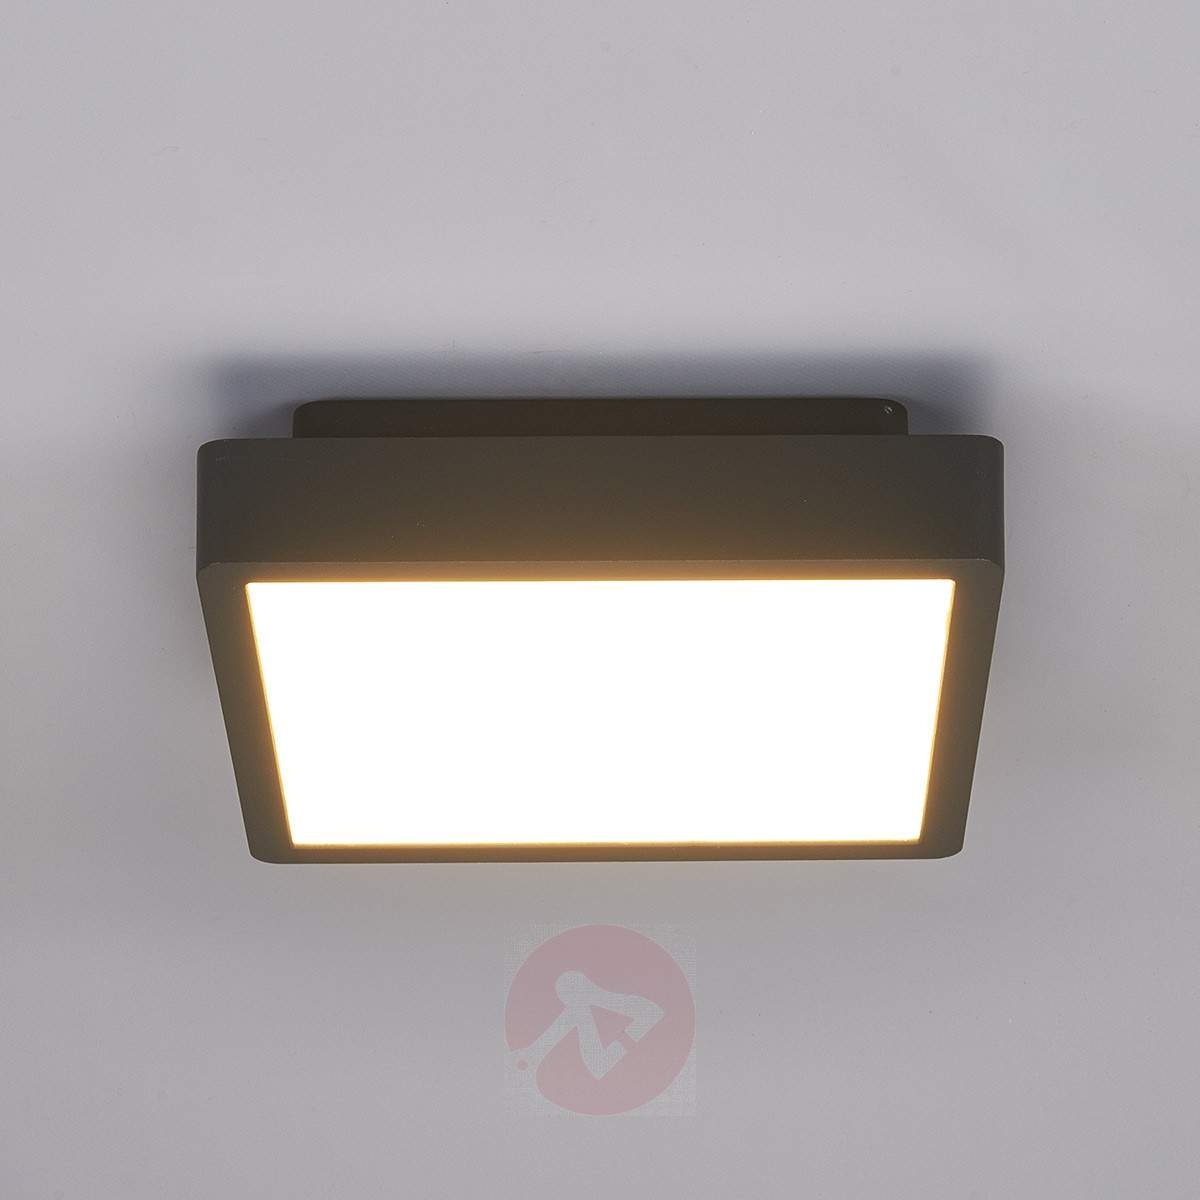 Inspiration about Rectangular Led Outdoor Ceiling Light Talea | Lights.co.uk For Outdoor Ceiling Can Lights (#13 of 15)